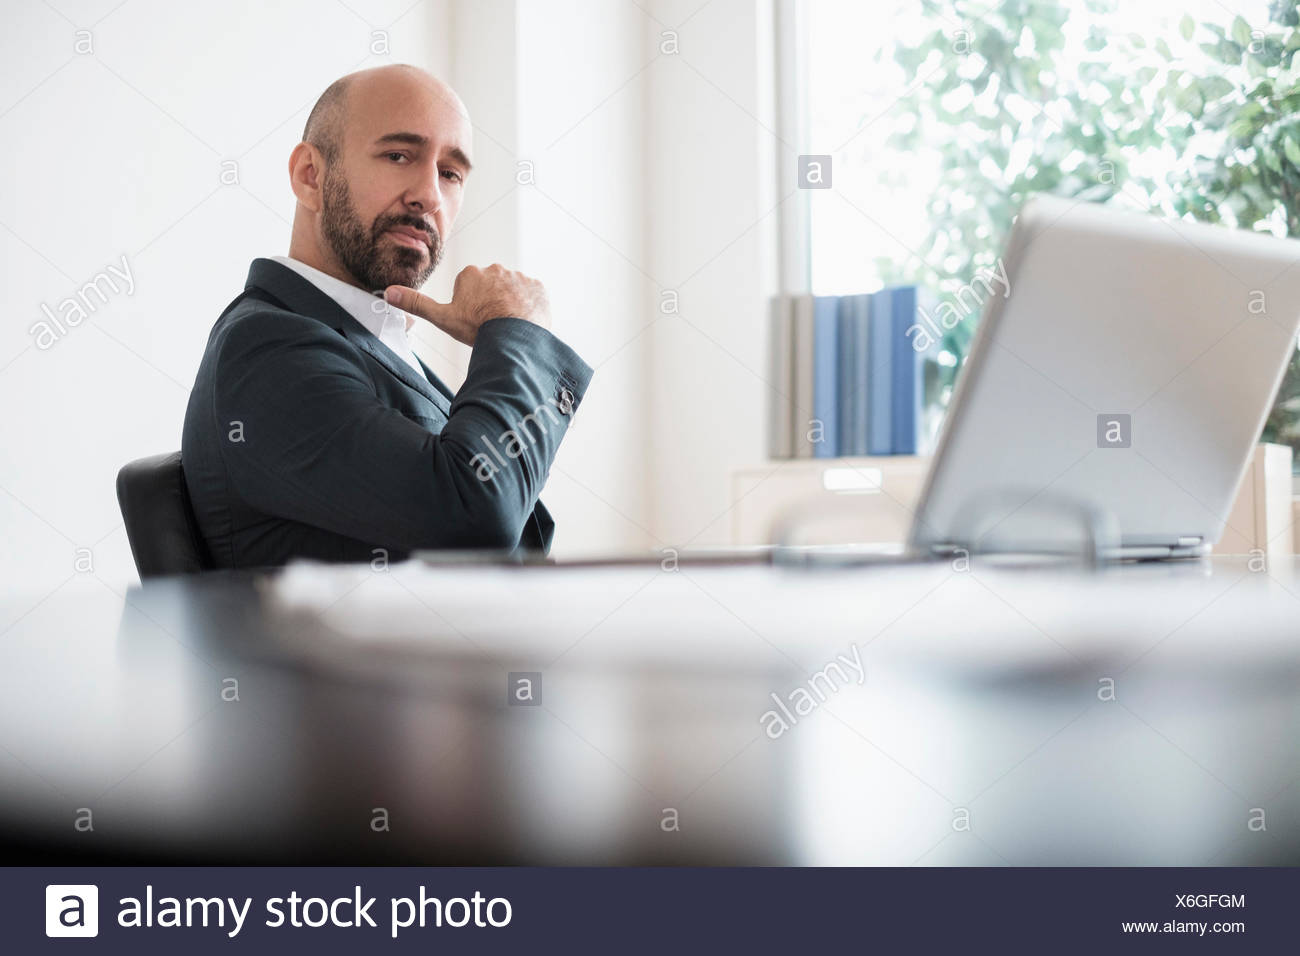 Serious businessman sitting at desk in office - Stock Image